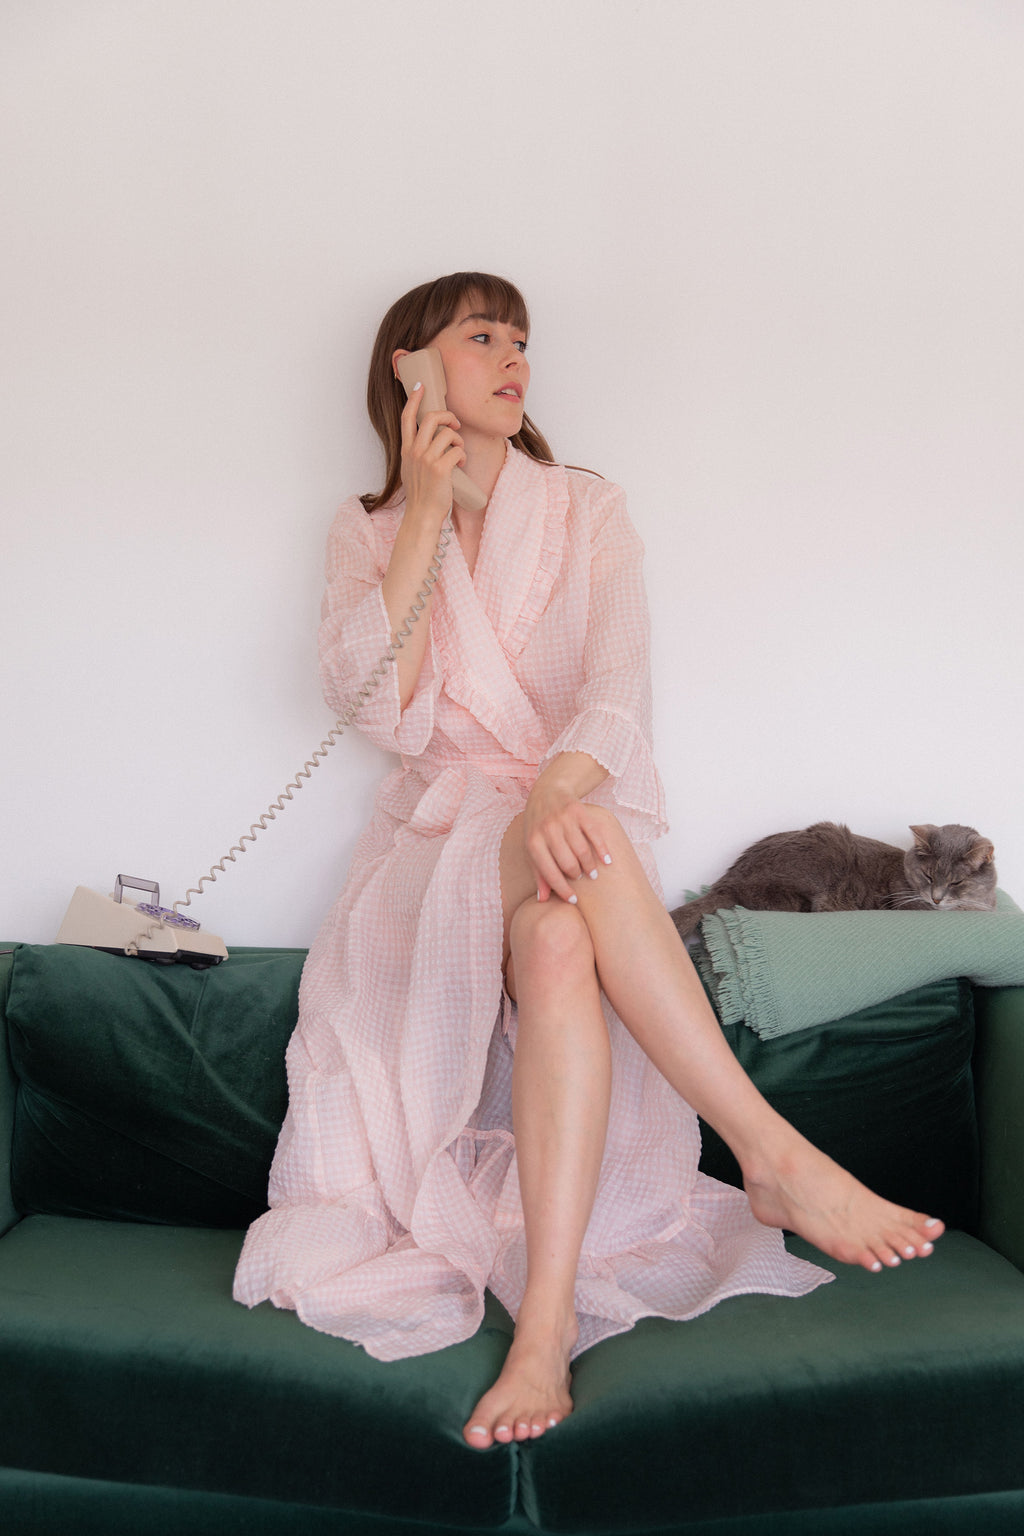 Anita is Vintage 60s Pink Gingham Dressing Gown